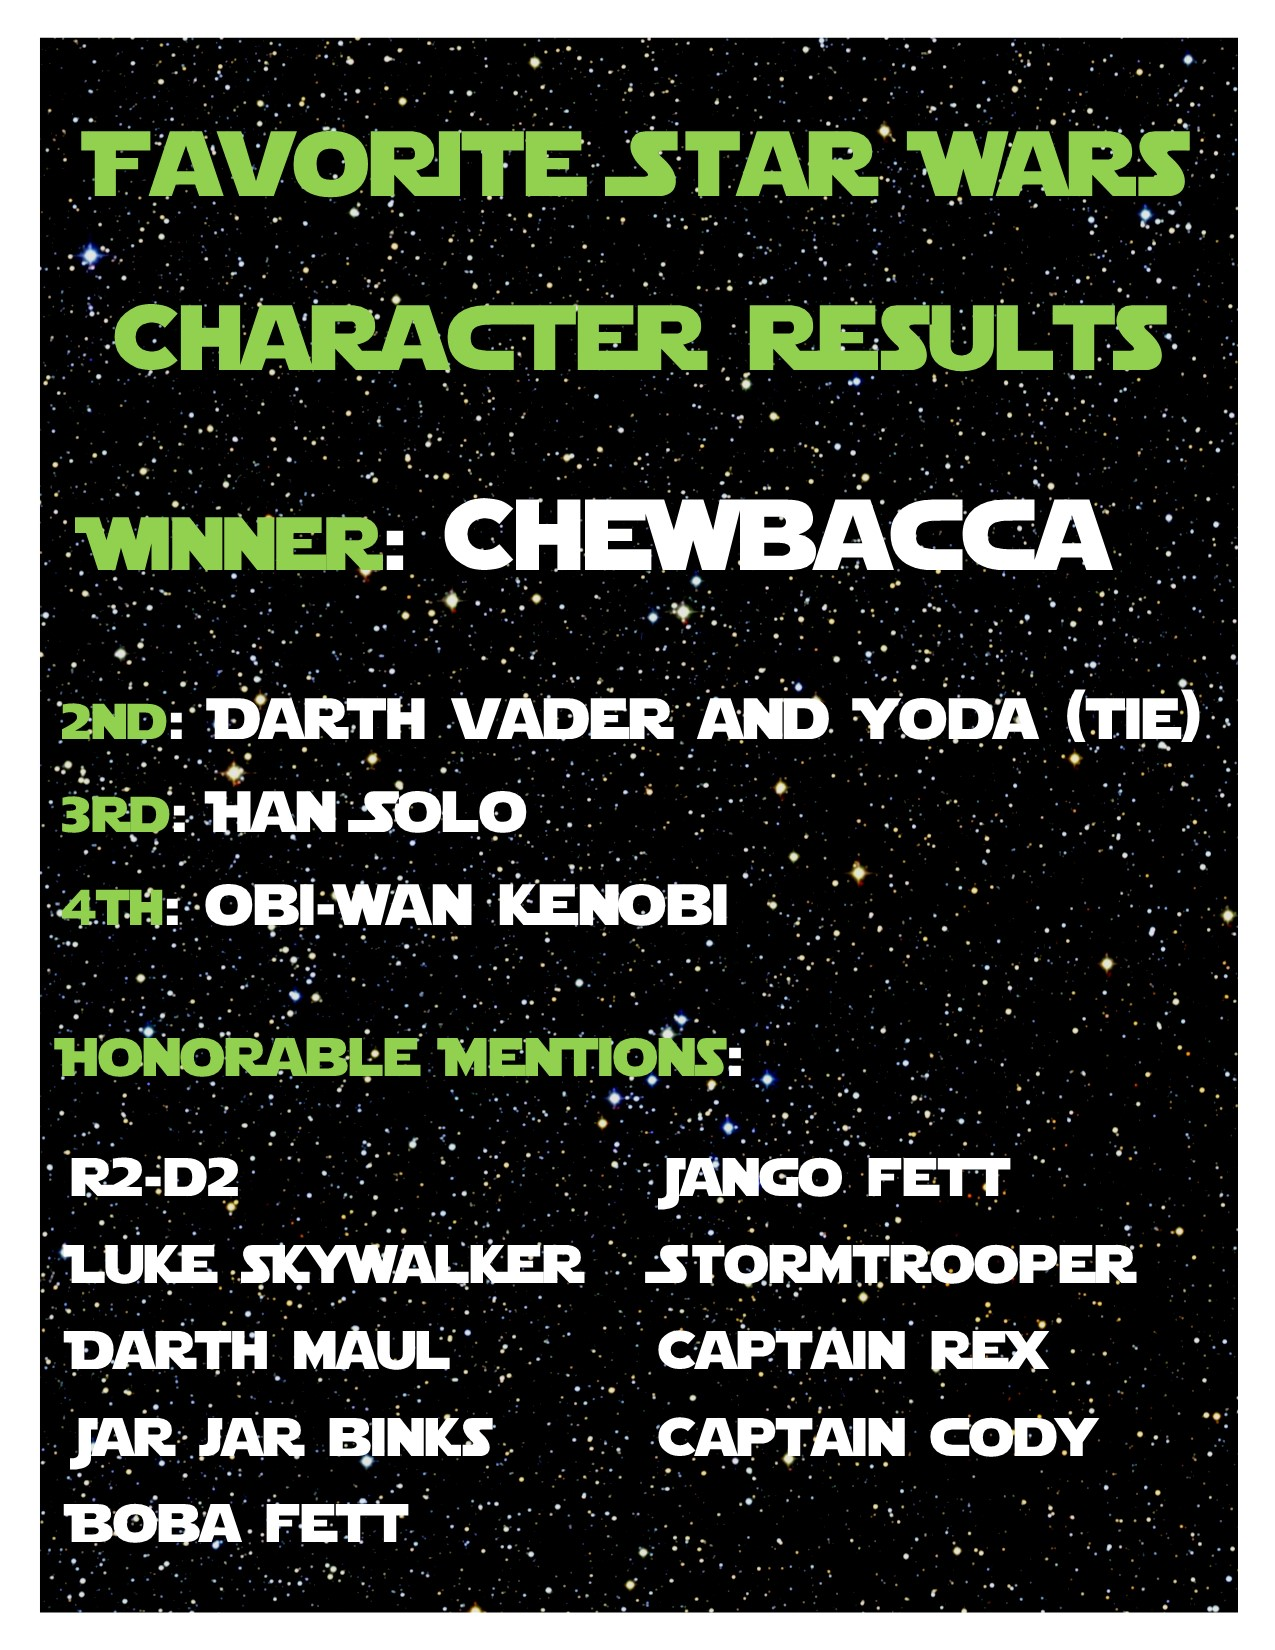 Everyone at Star Wars Reads day voted and the winner of favorite character is . . . CHEWBACCA!